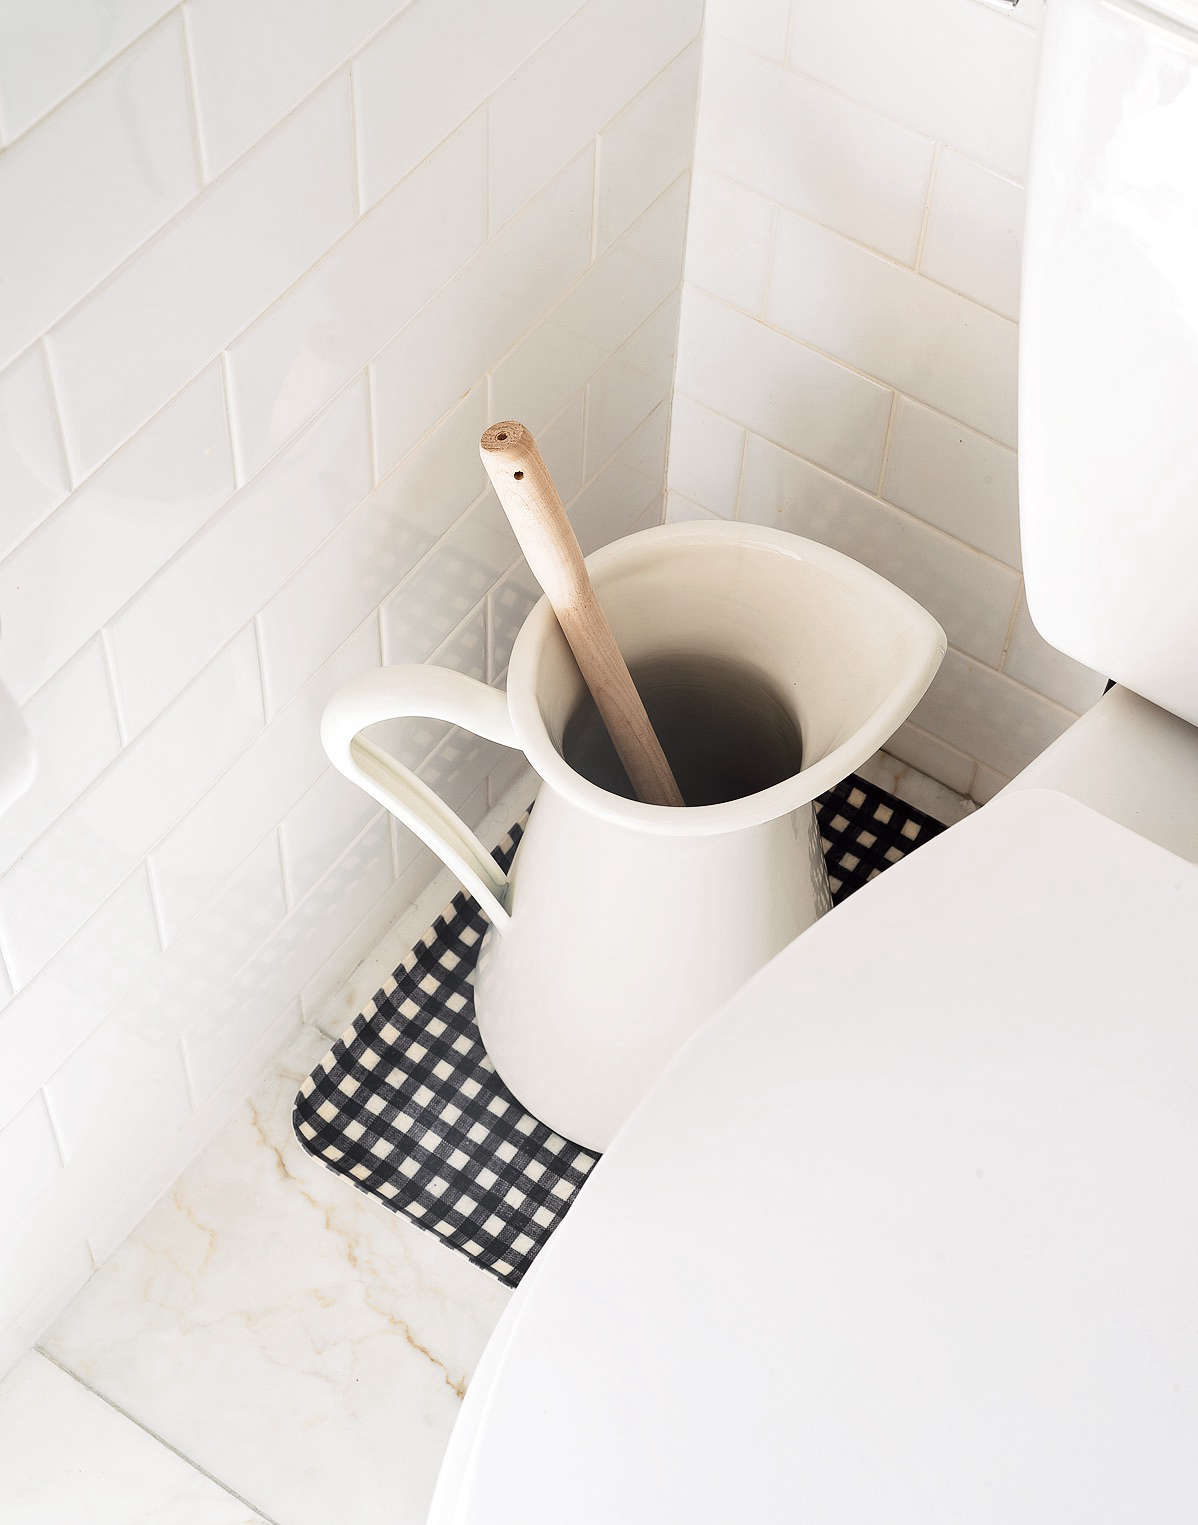 Aha! Hack: 3 Clever (and Attractive!) Ways to Store the Toilet Brush - The Organized Home